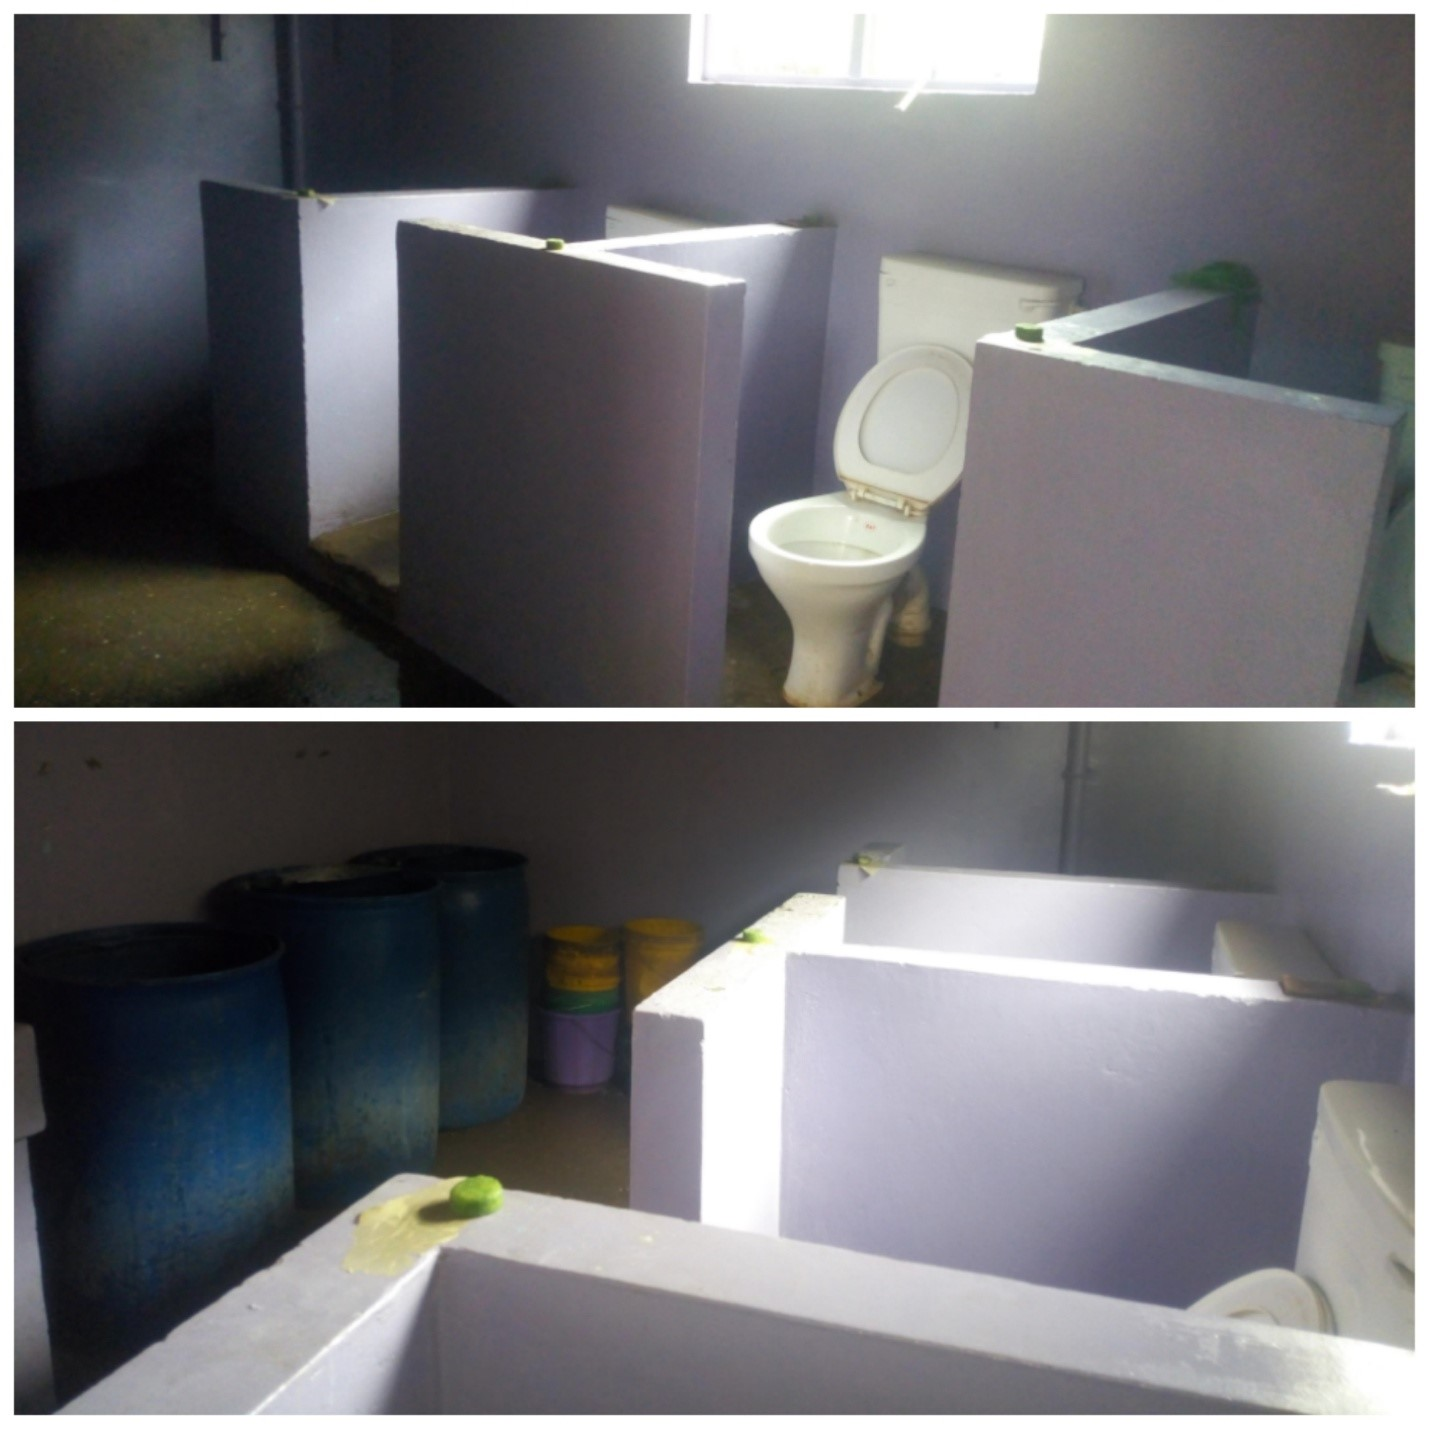 Fountain Of Hope Girls Ablution Block Renovations